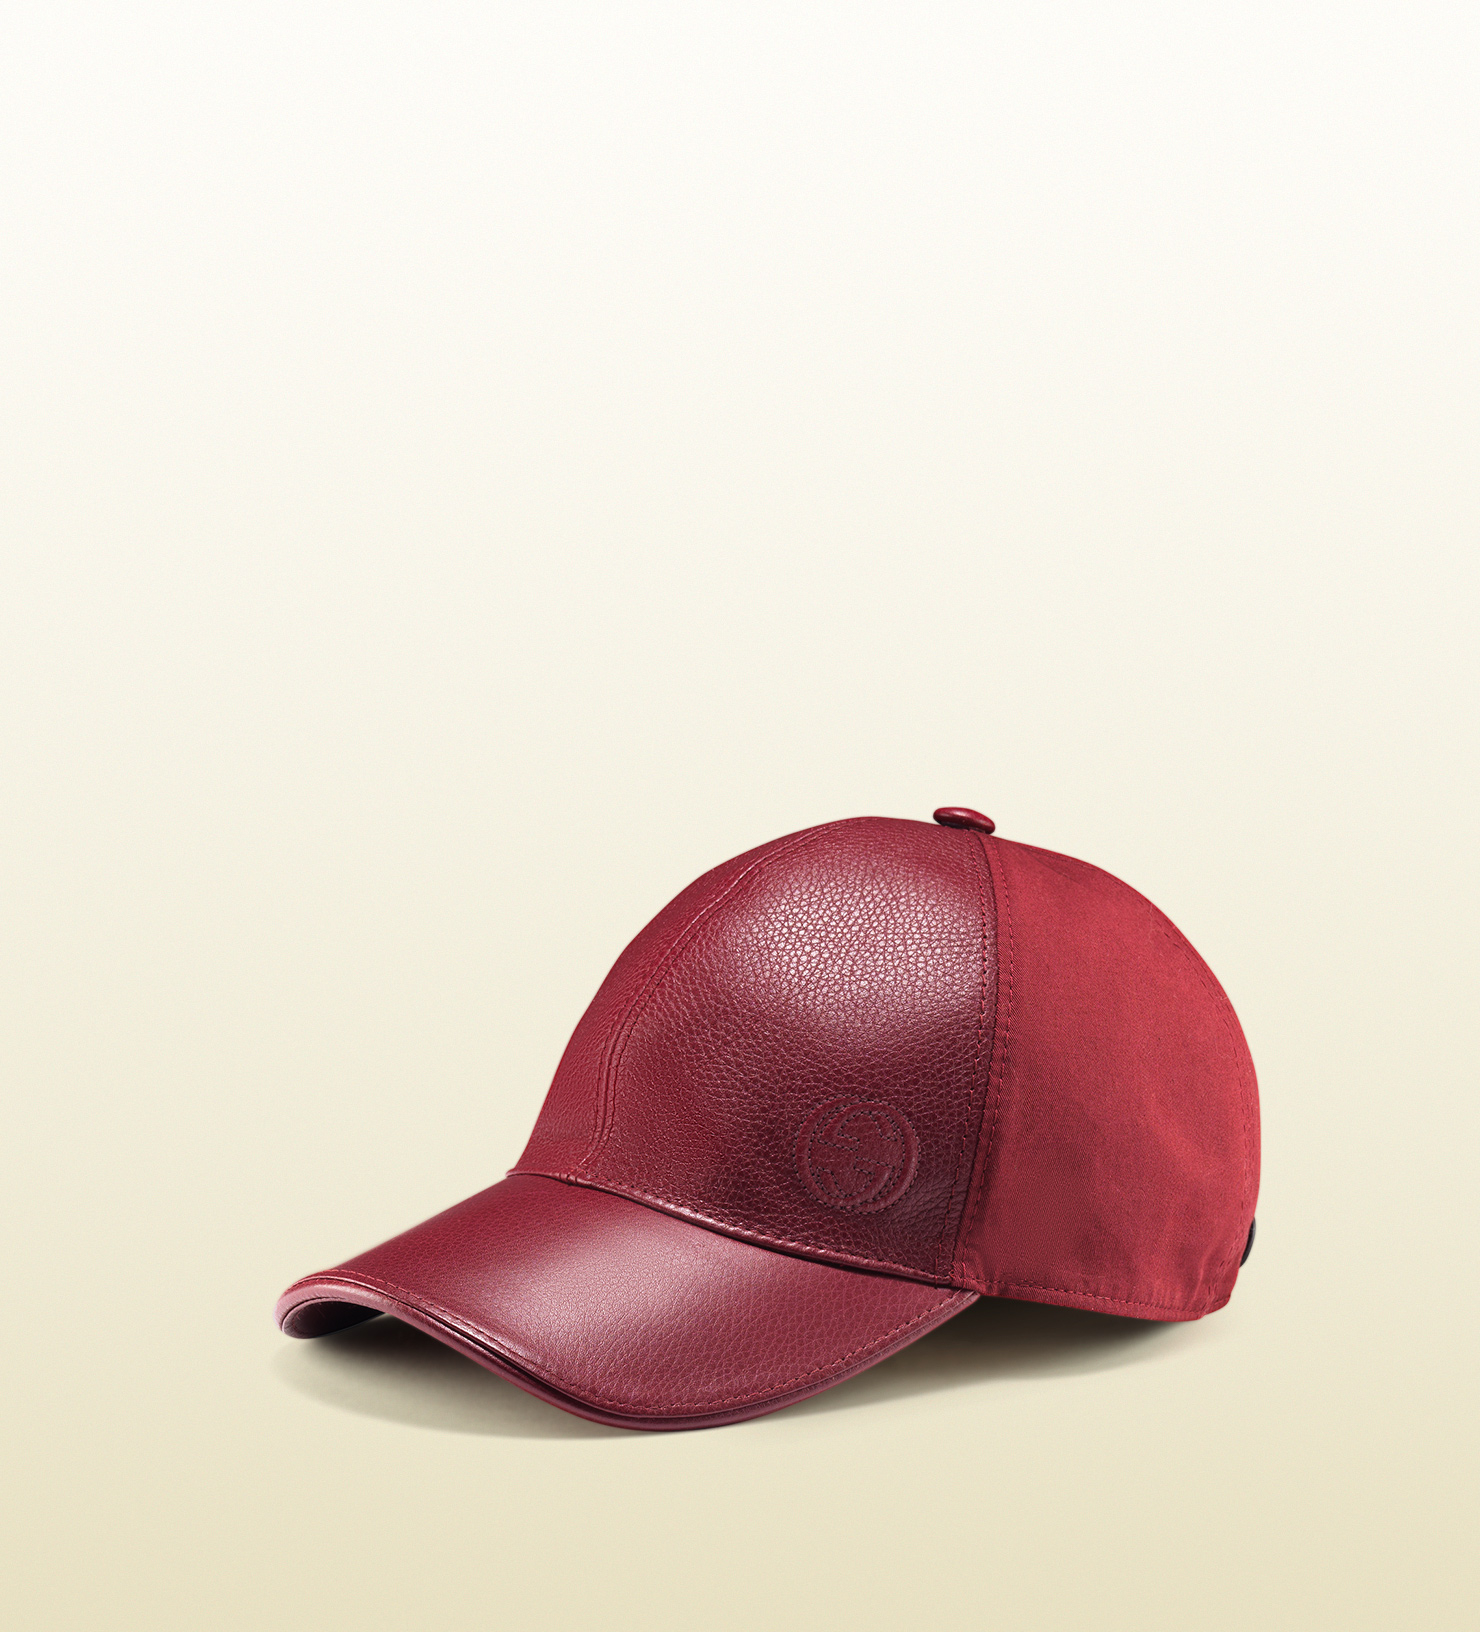 4db5703ce71 Lyst - Gucci Leather Linen Baseball Hat in Red for Men